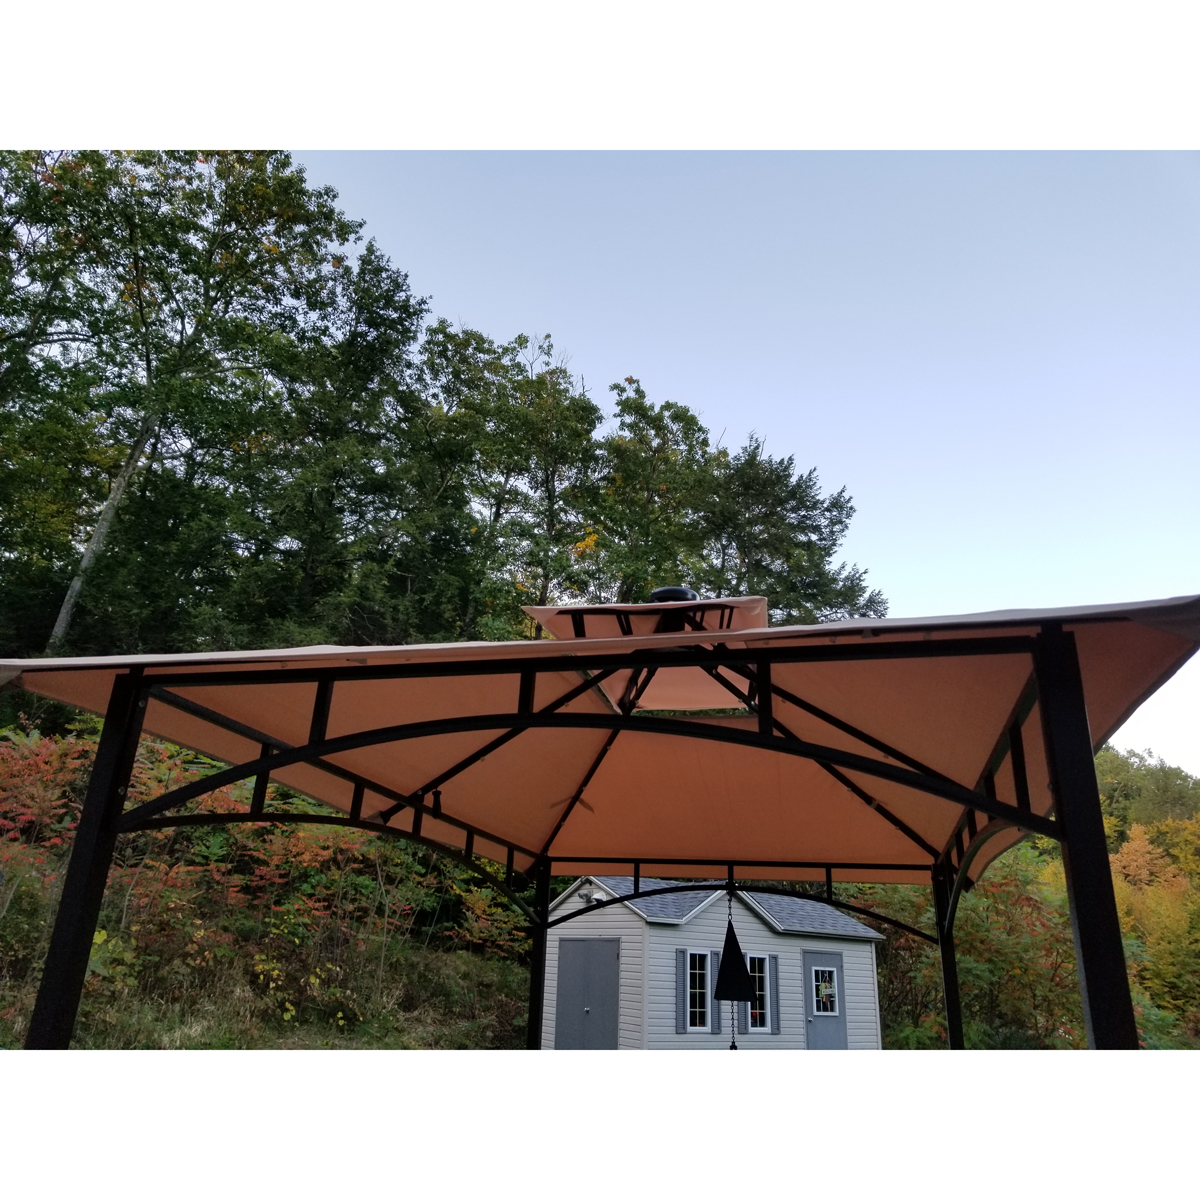 Replacement Canopy For Grill Gaz With Solar Lights